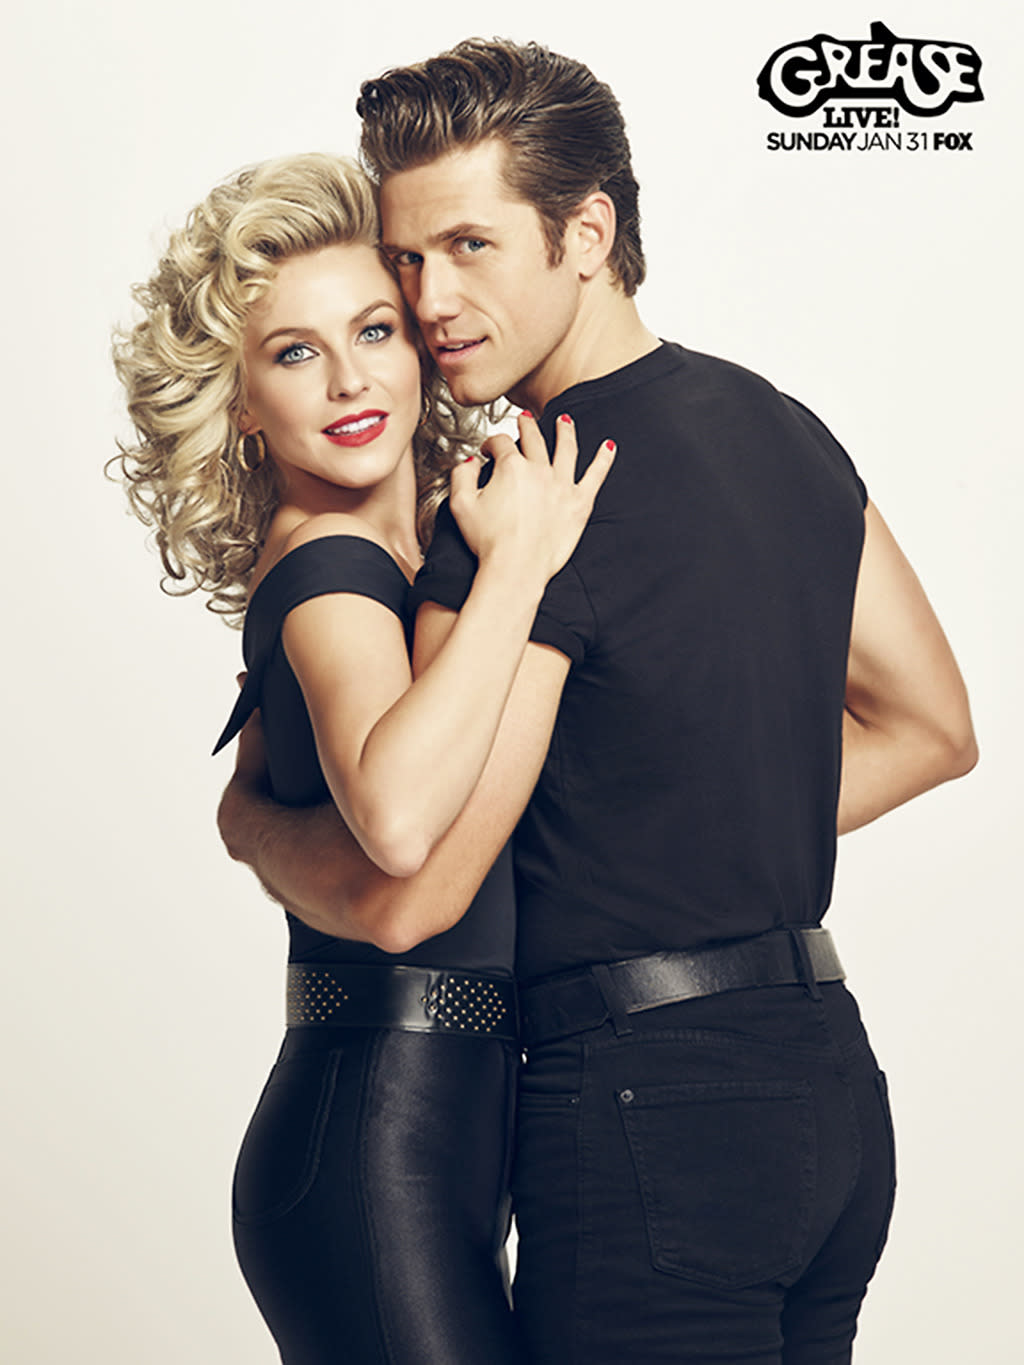 See 'Grease: Live' Photos